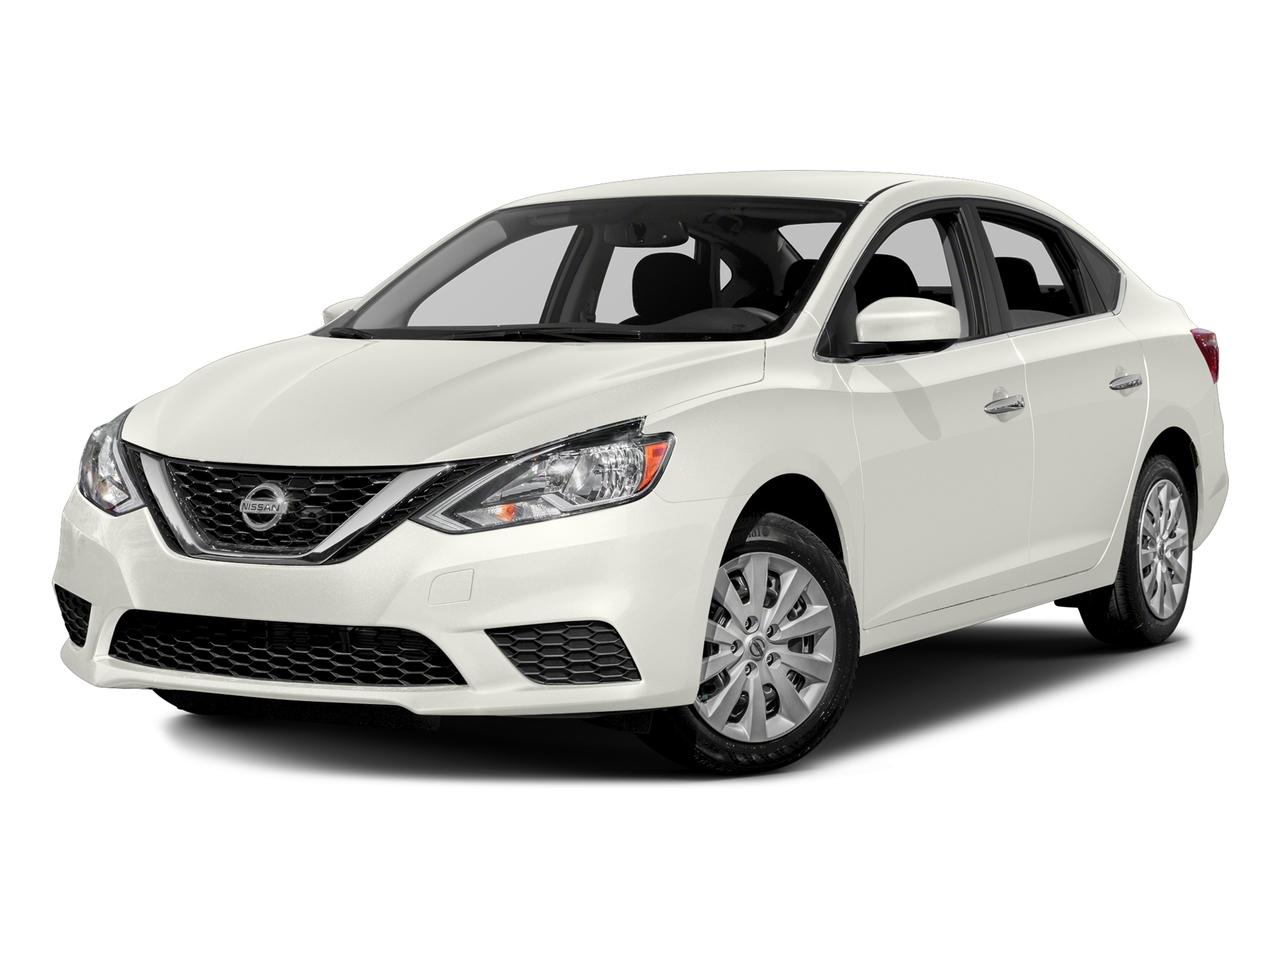 2016 Nissan Sentra Vehicle Photo in Avon, CT 06001